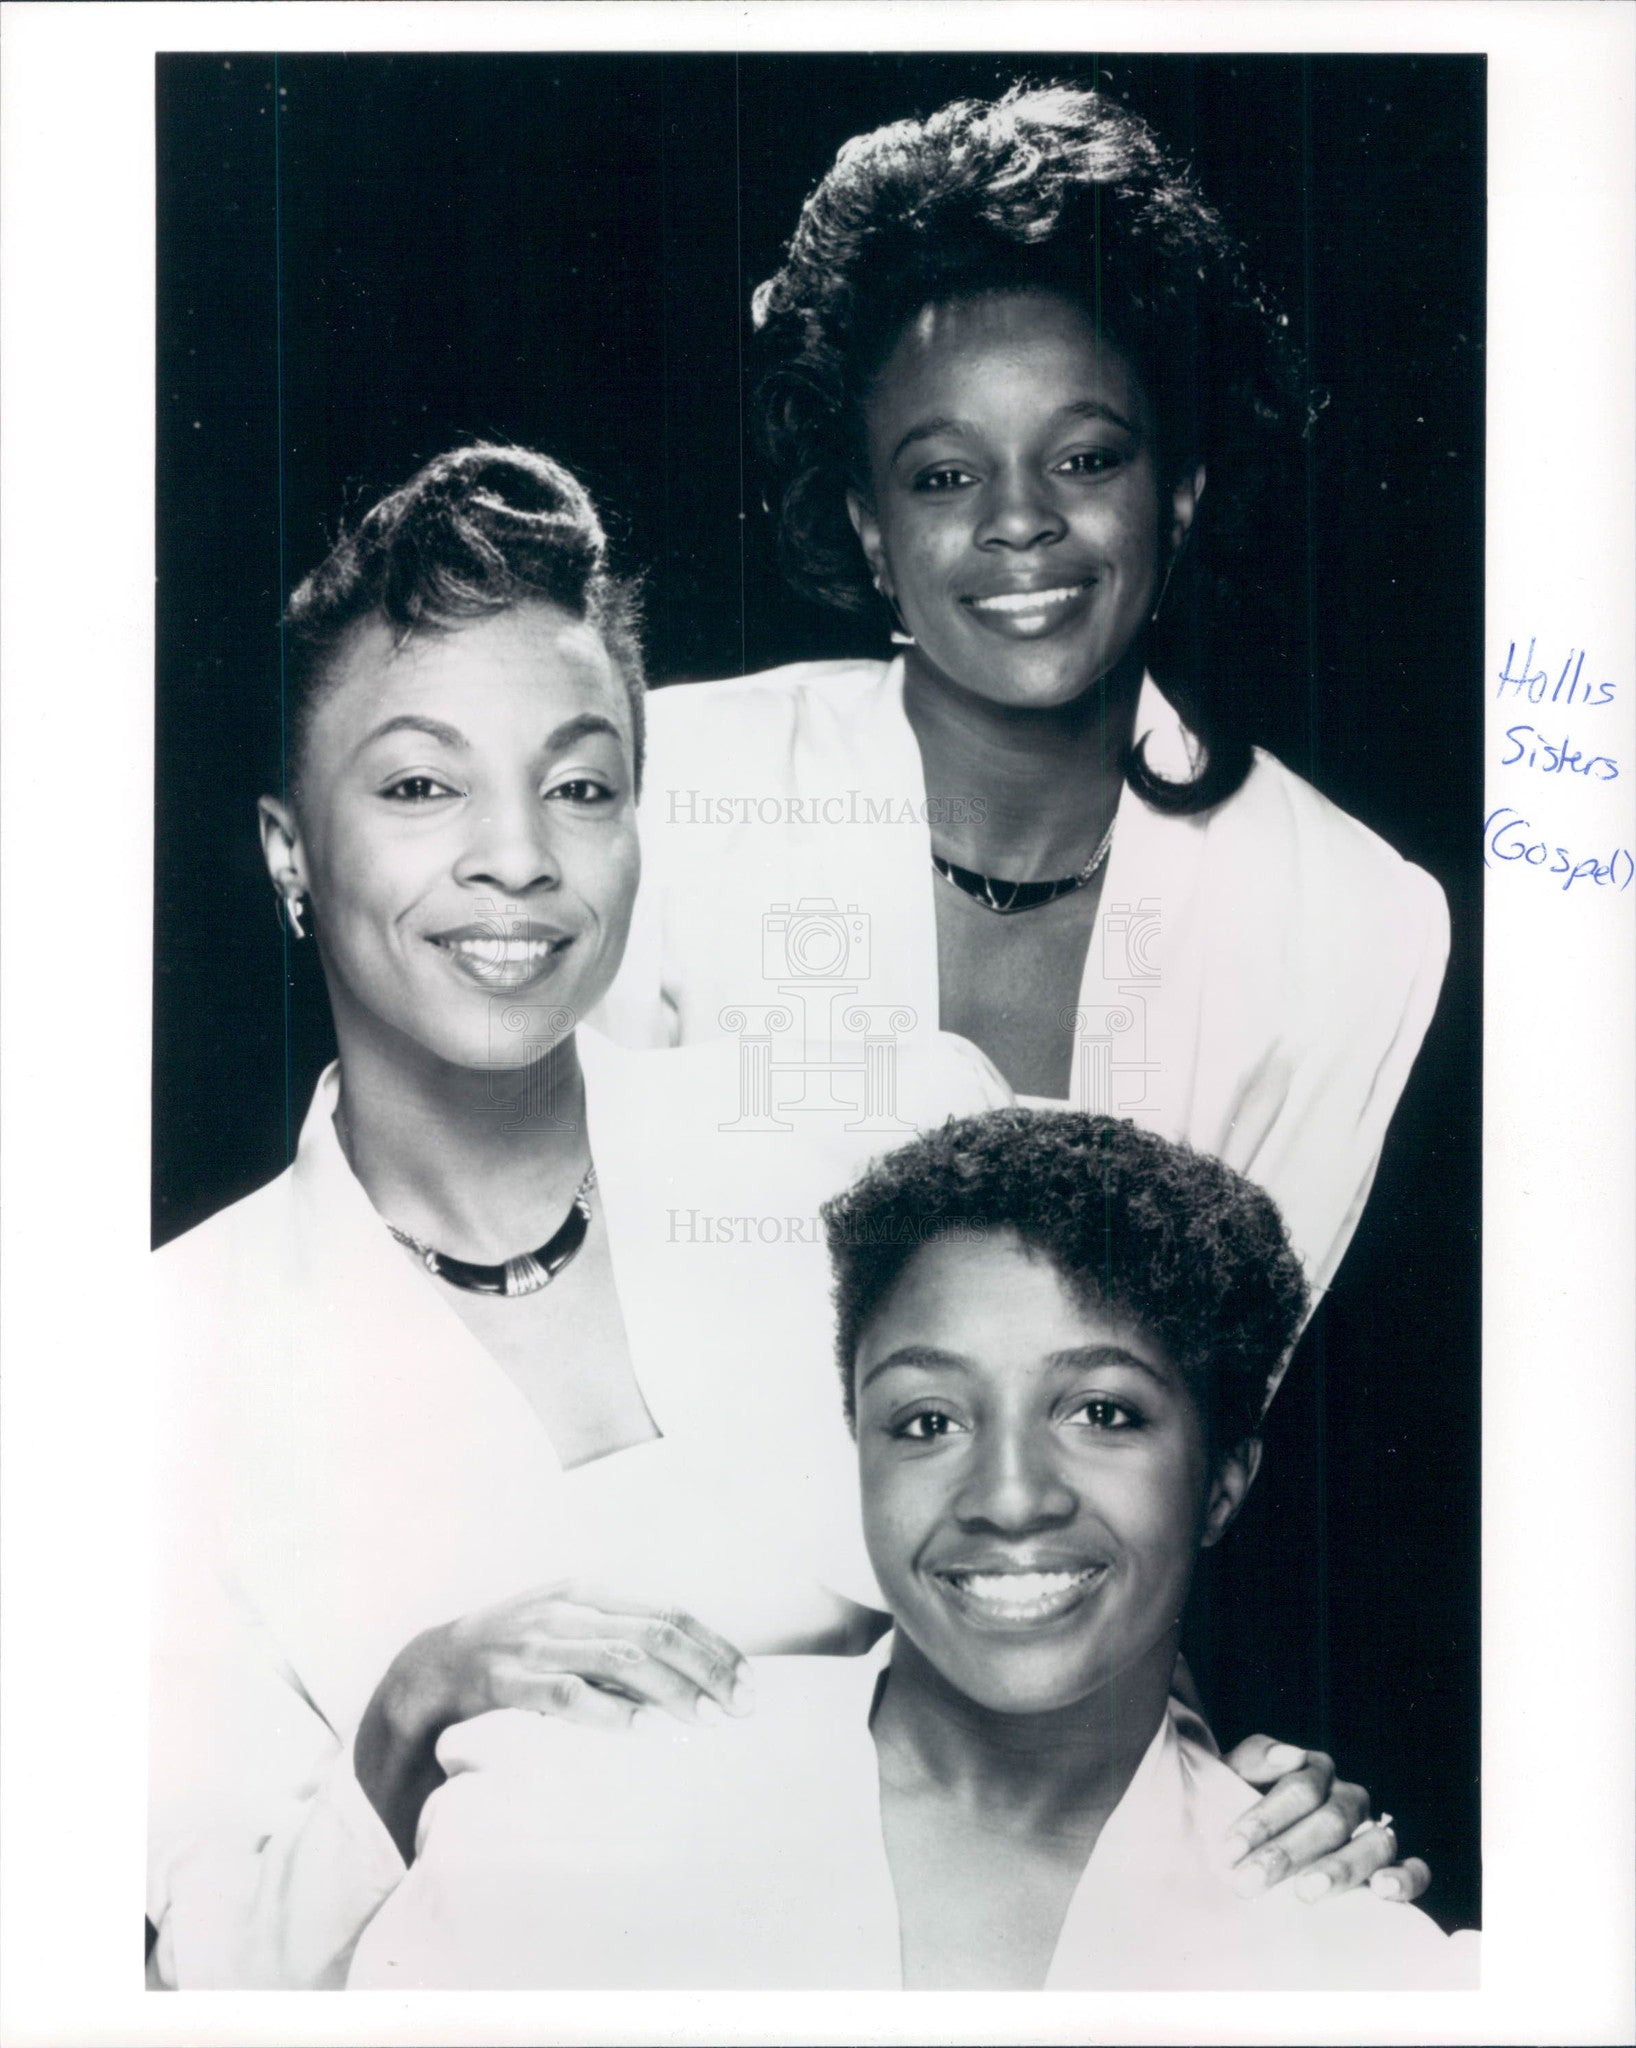 1990 Gospel Singers the Hollis Sisters Press Photo - Historic Images